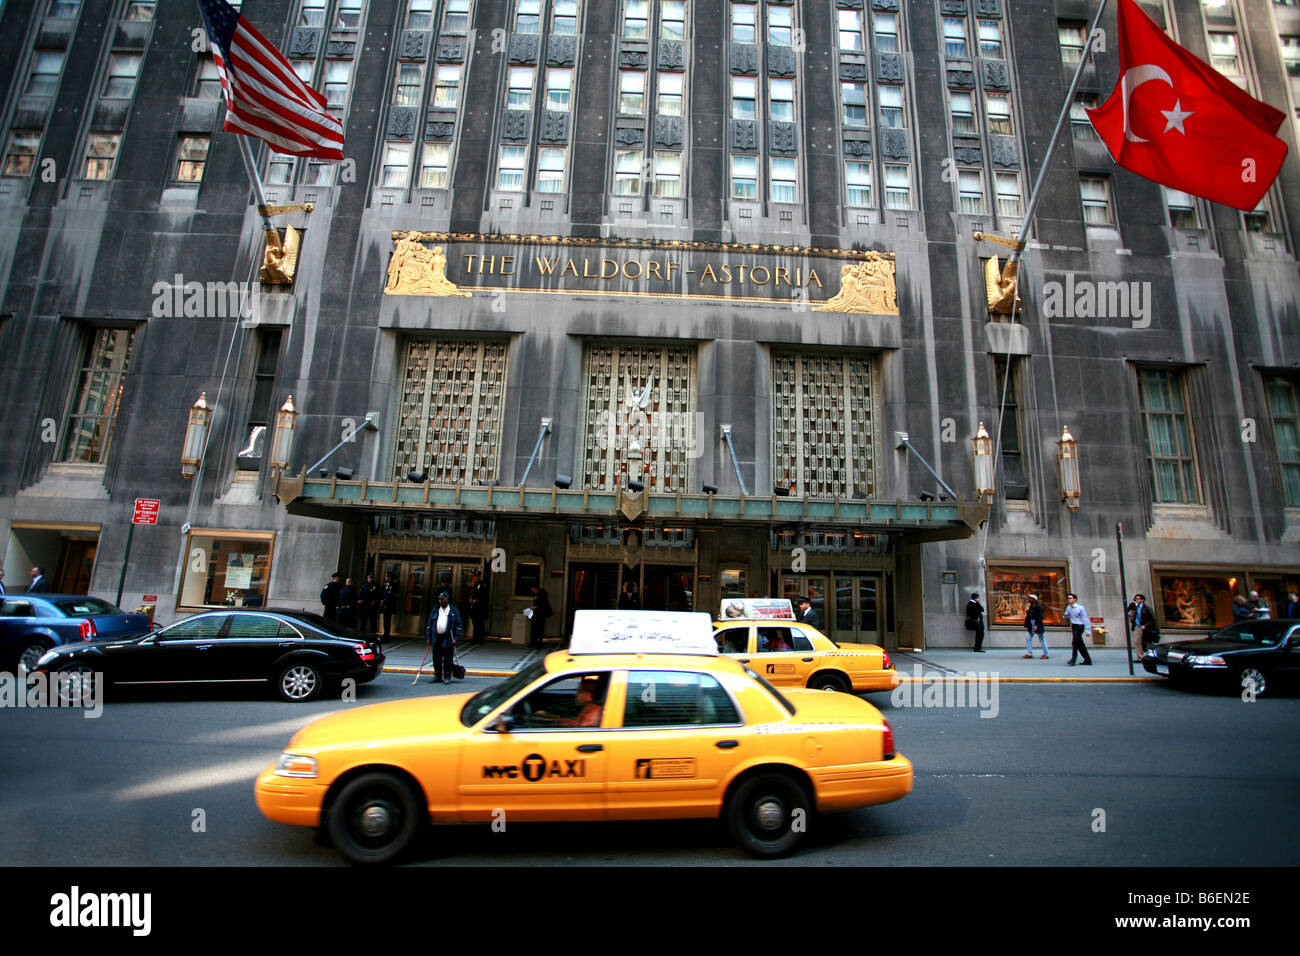 Taxi in front of the Waldorf Astoria luxury hotel in Manhattan, New York City, USA - Stock Image